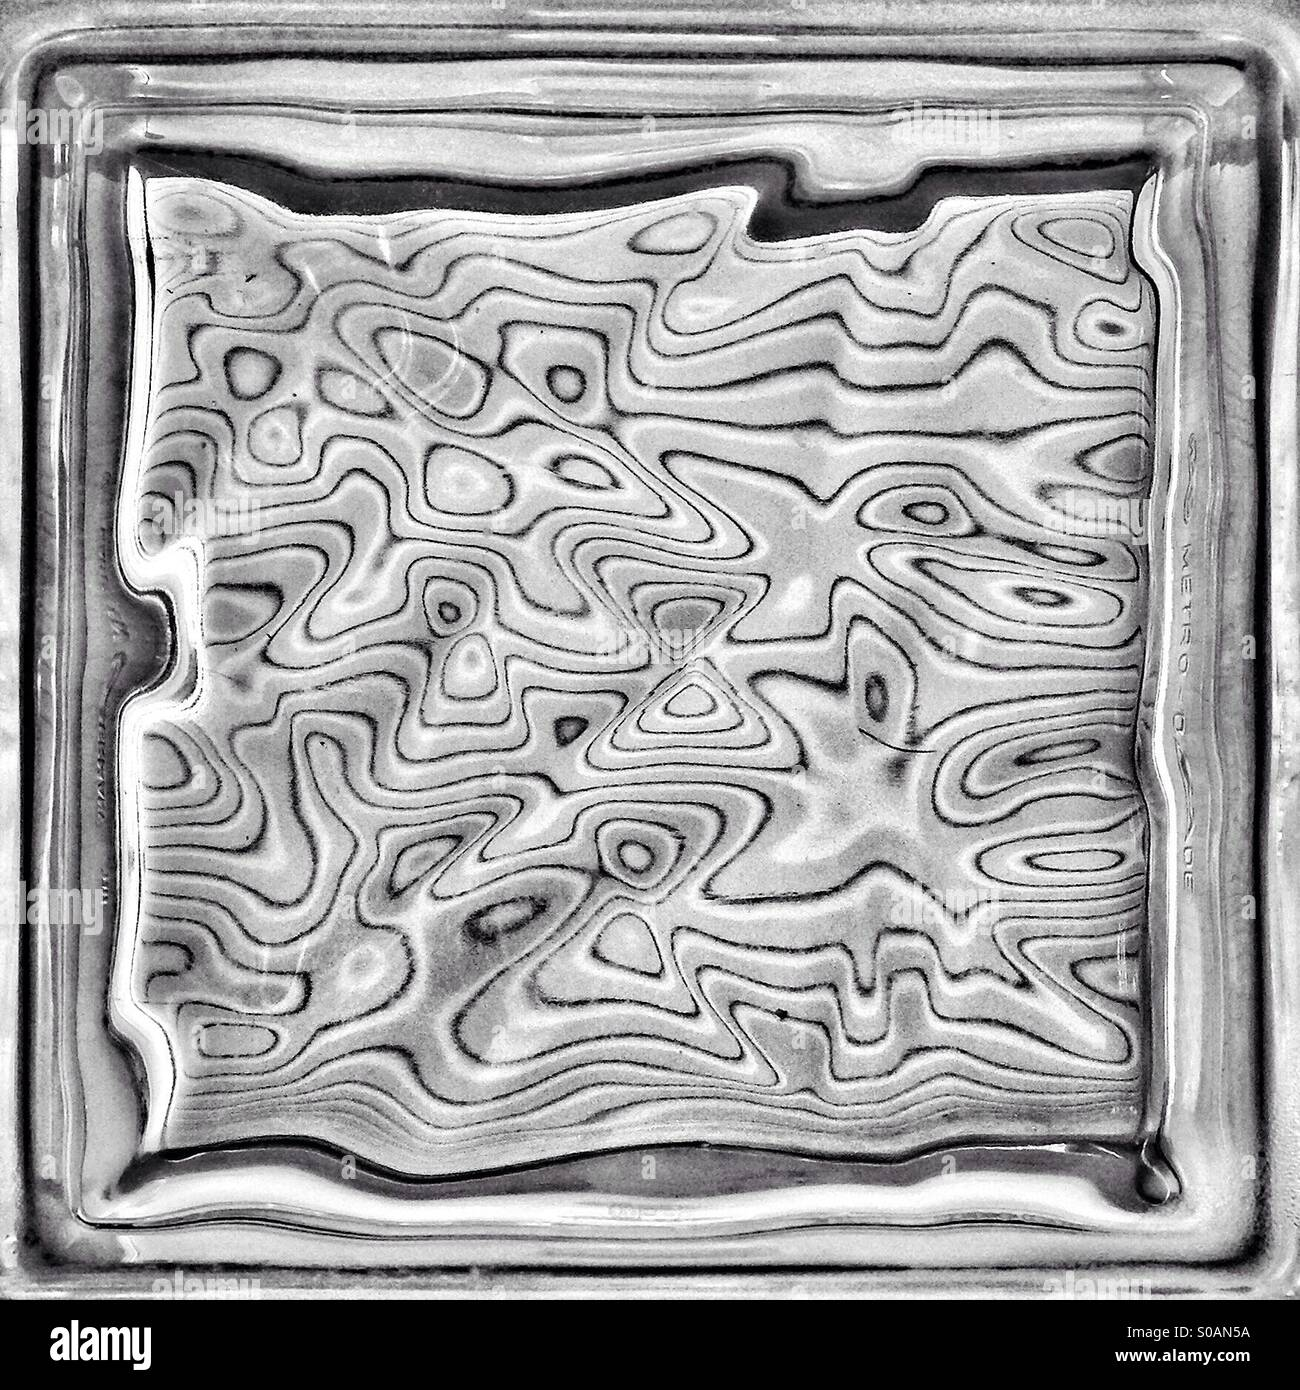 Abstract of light pattern through a warped-glass block. - Stock Image